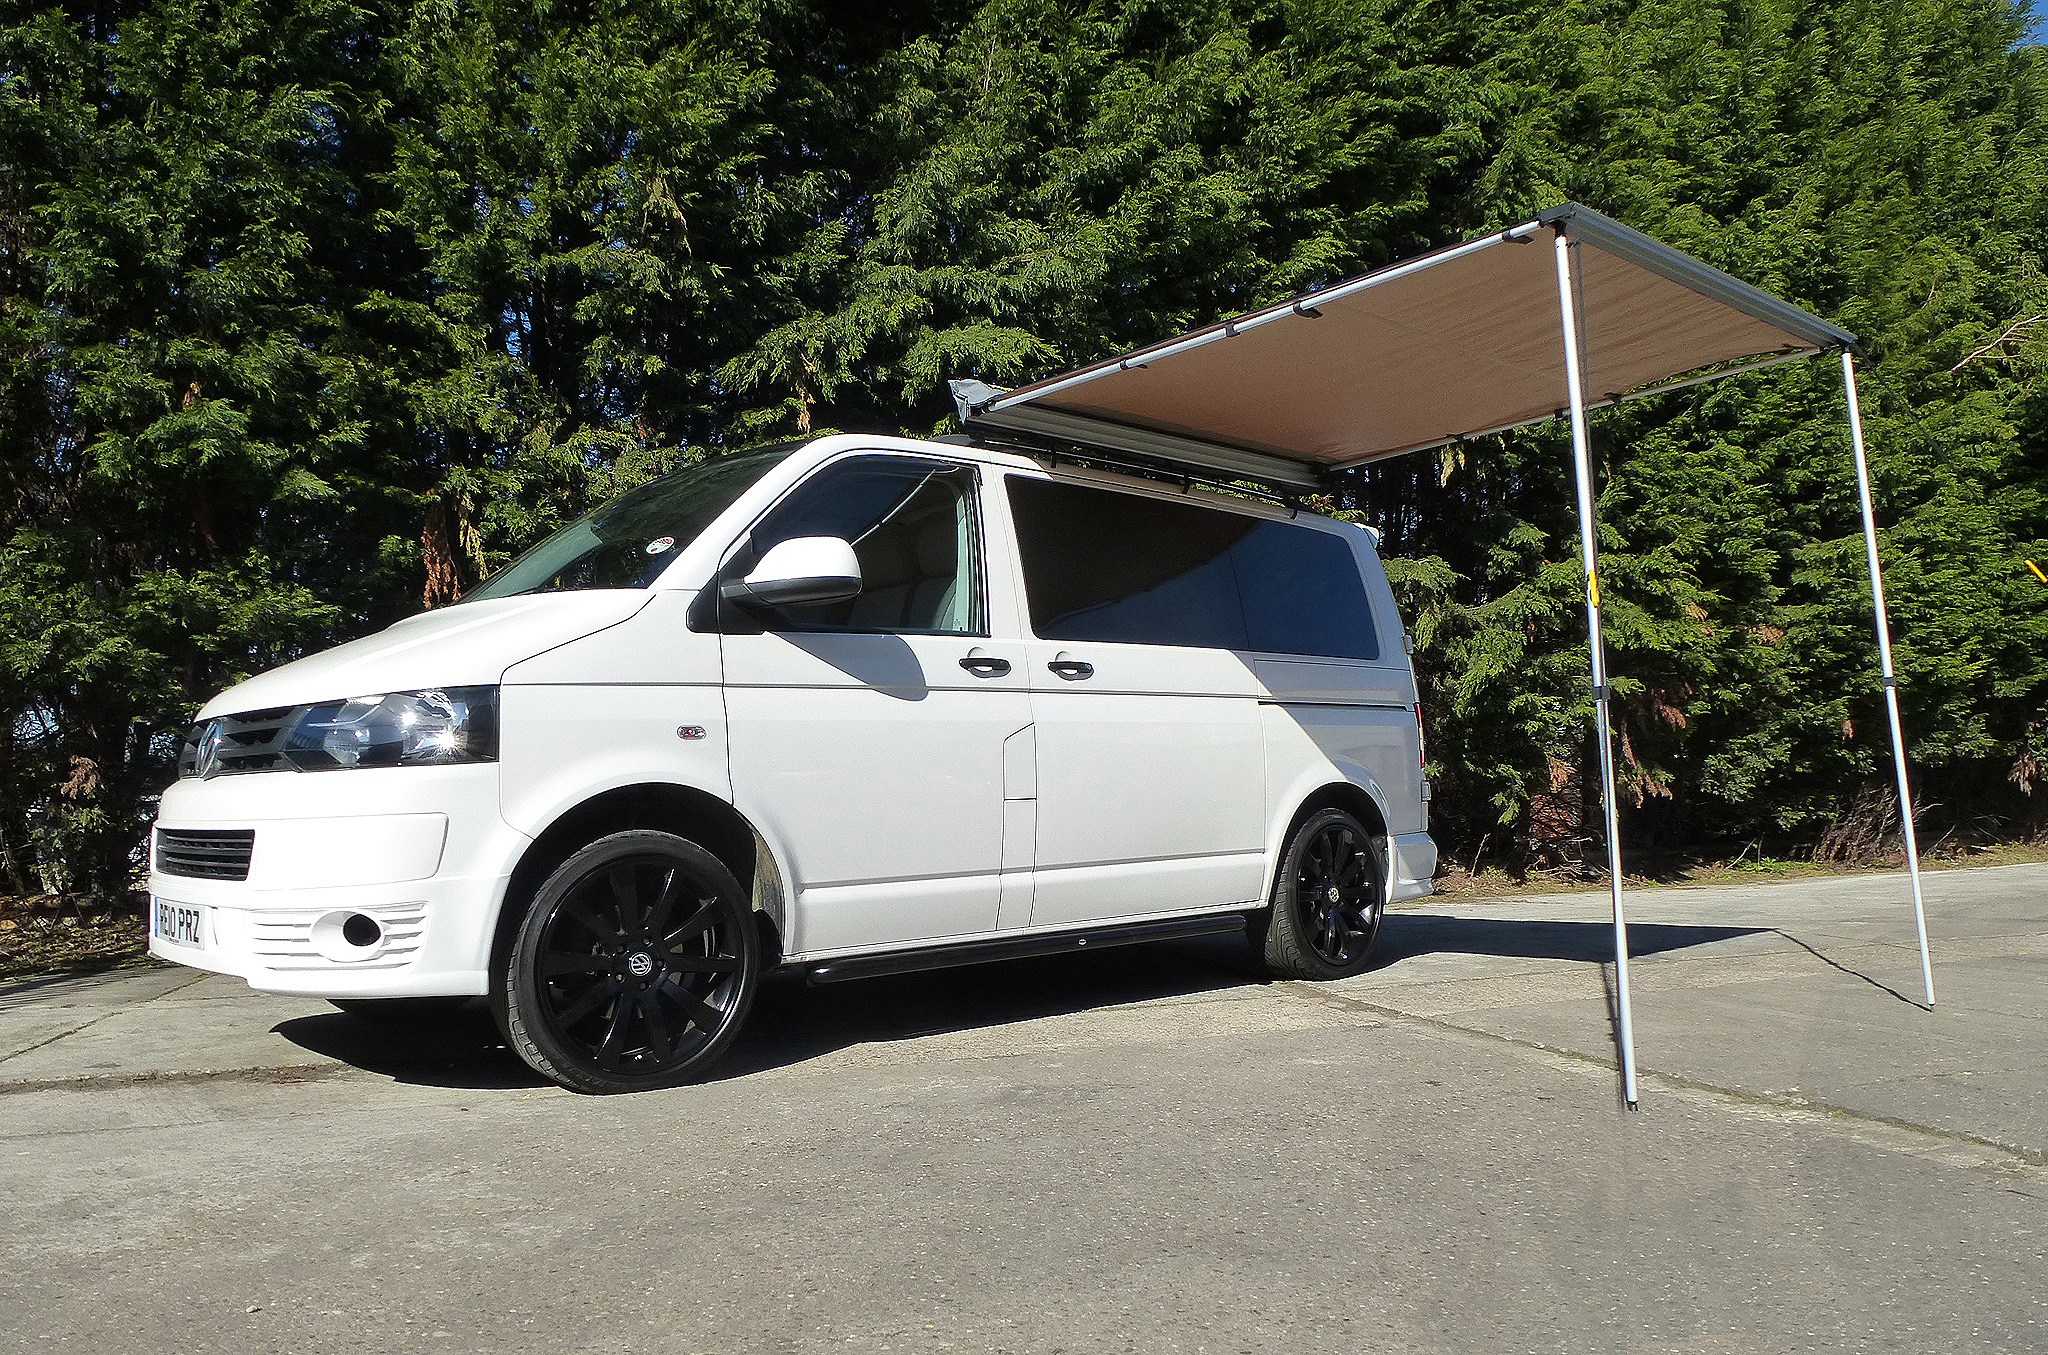 2.0M x 2.5M Mercedes Vito Viano Pull Out Awning Heavy Duty ...